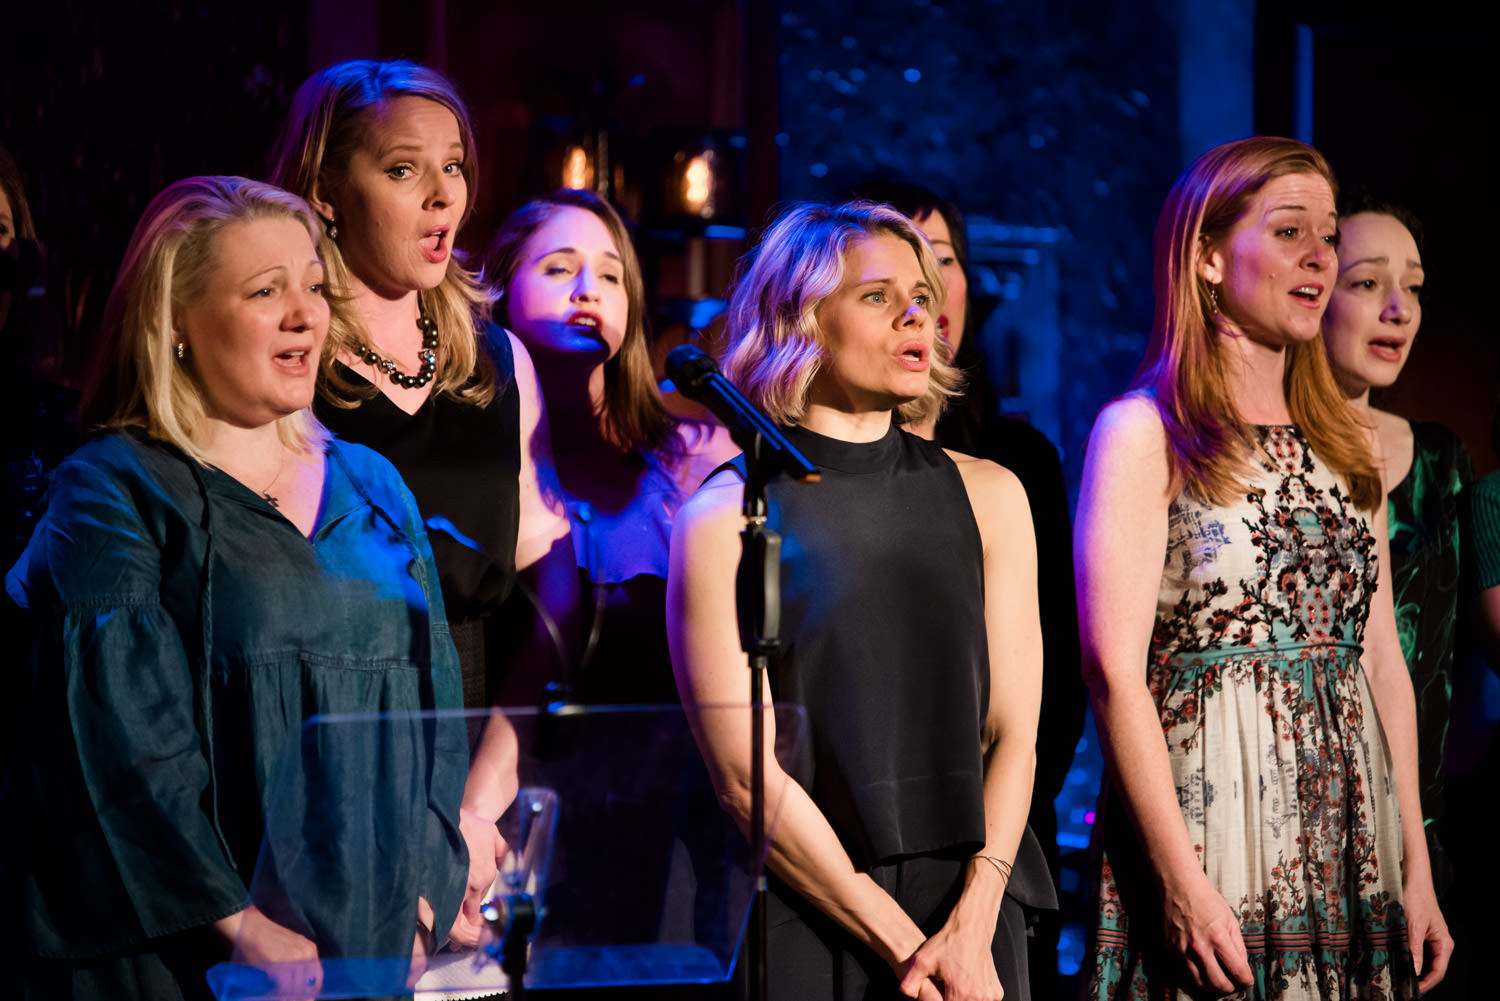 Broadway actresses sing onstage at 54 Below.